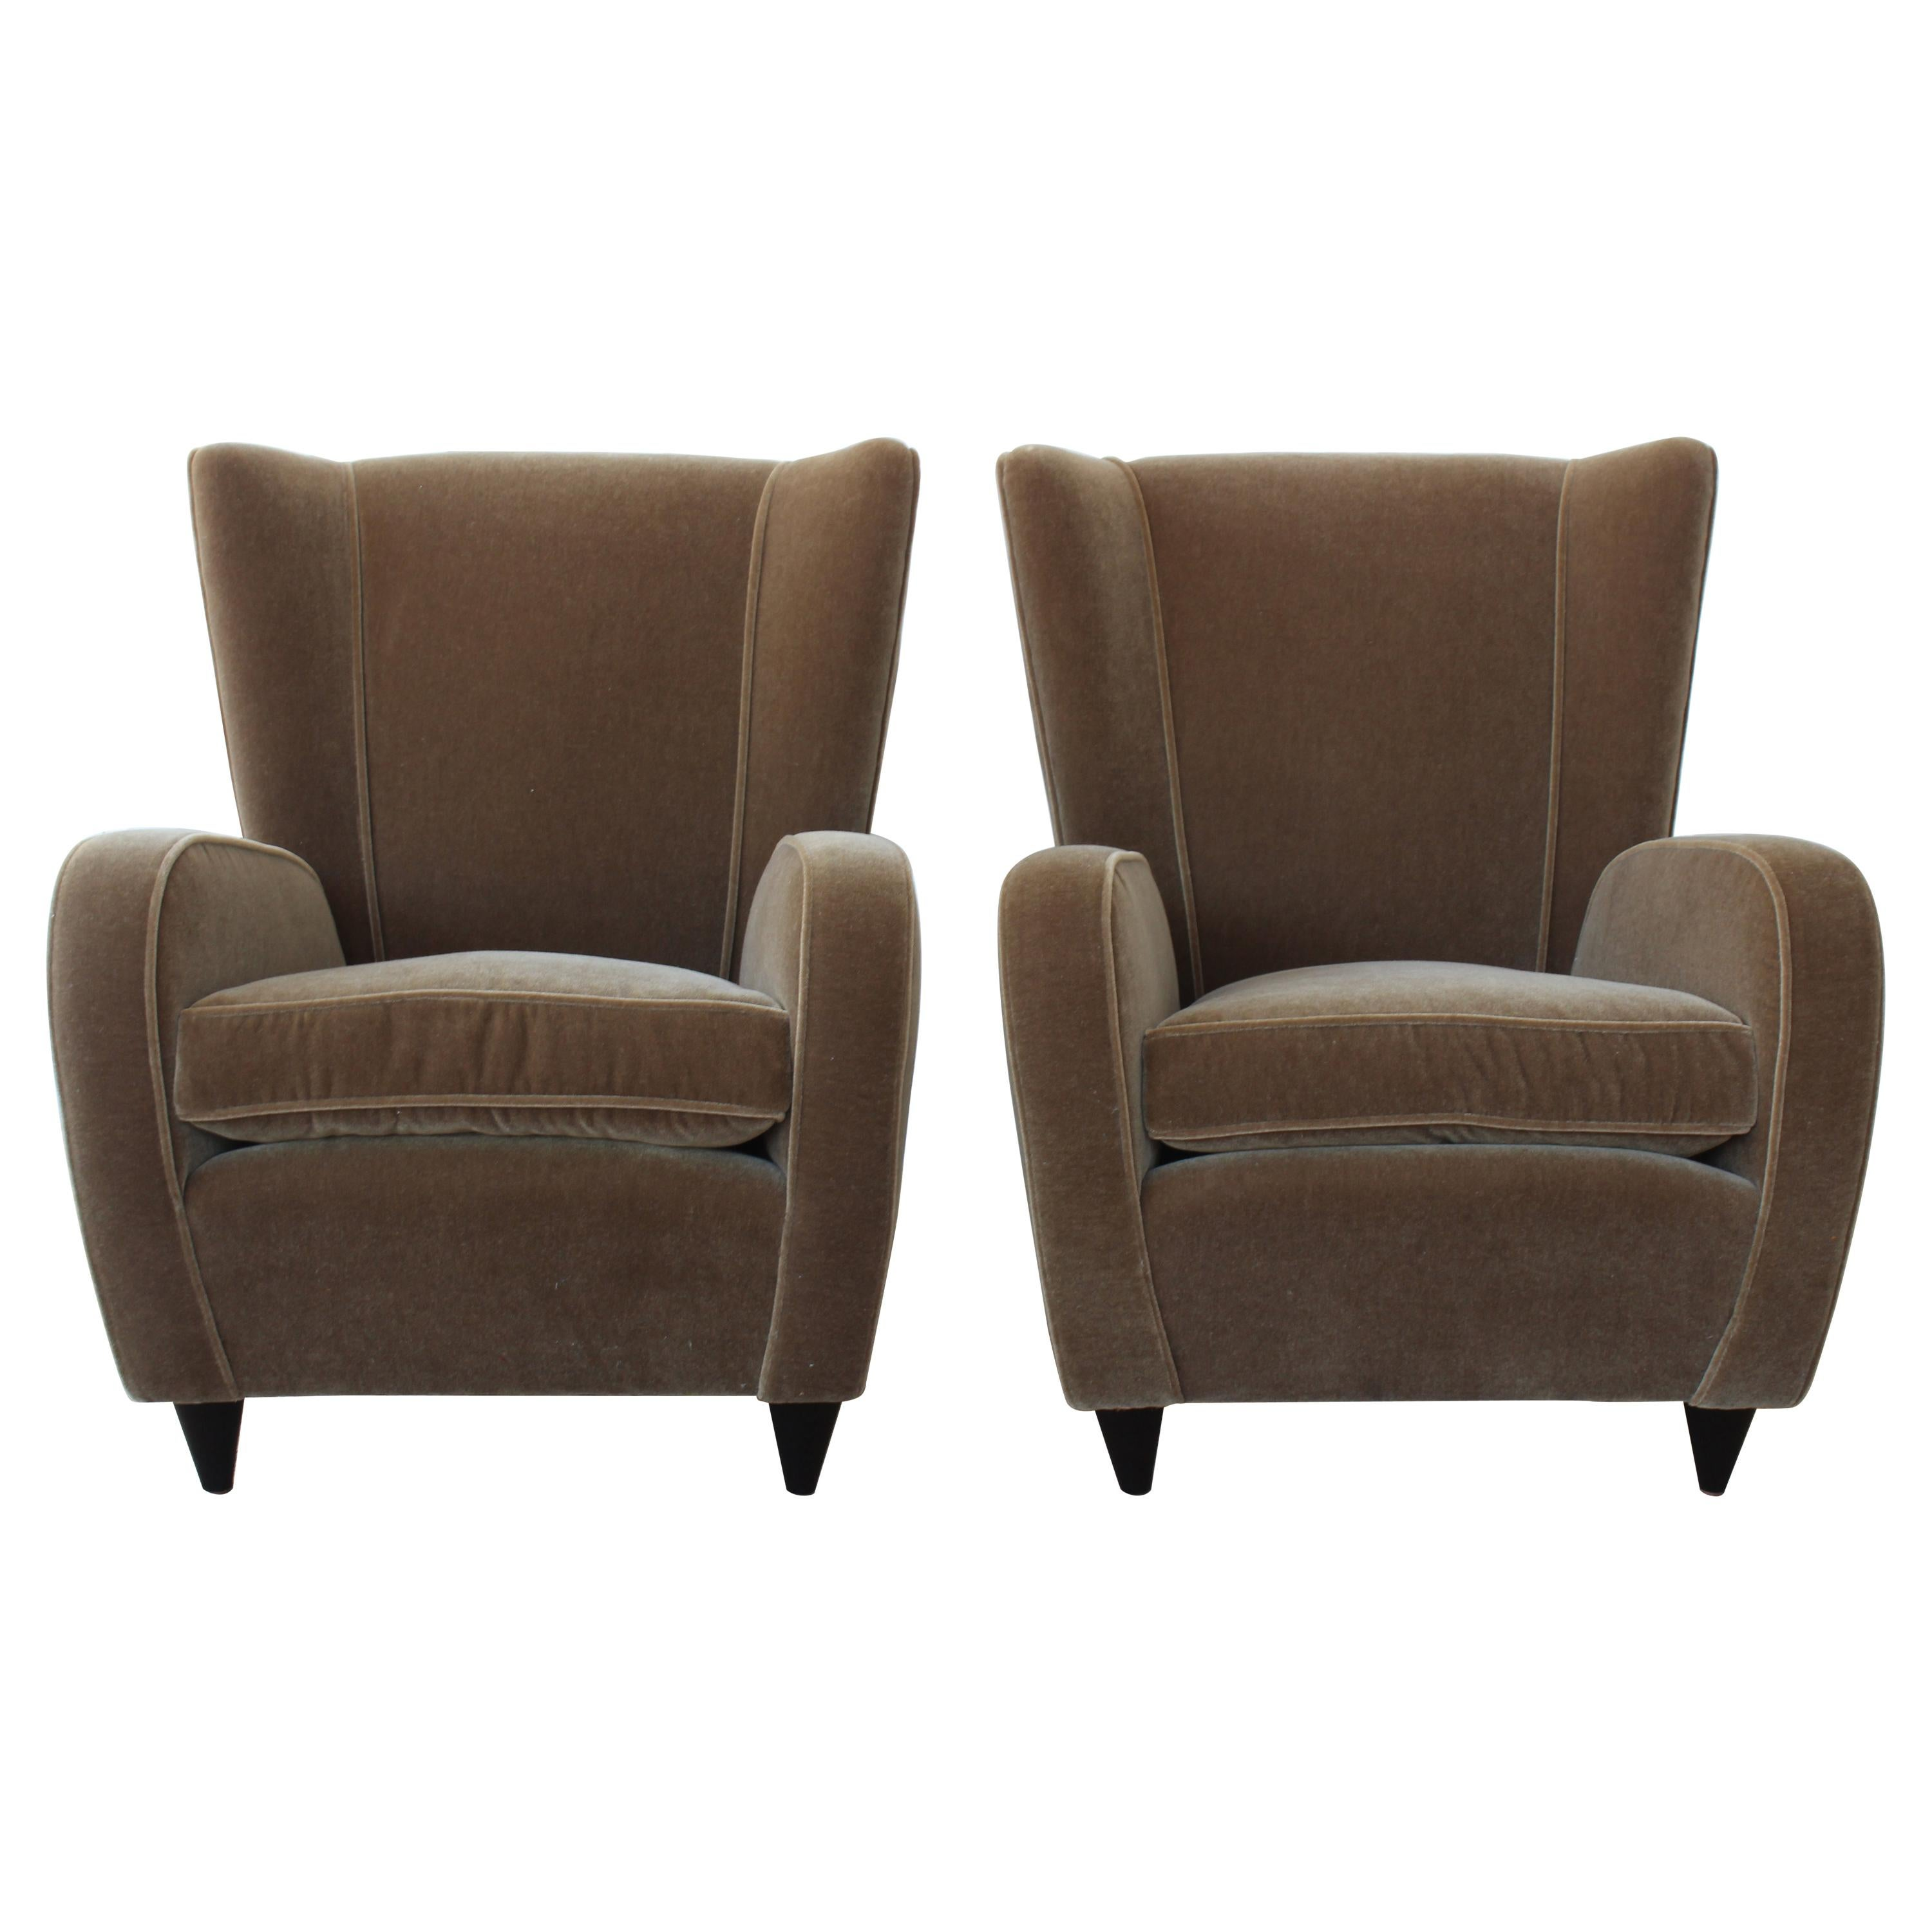 Pair of Wing Chairs by Paolo Buffa, Italy, 1940s